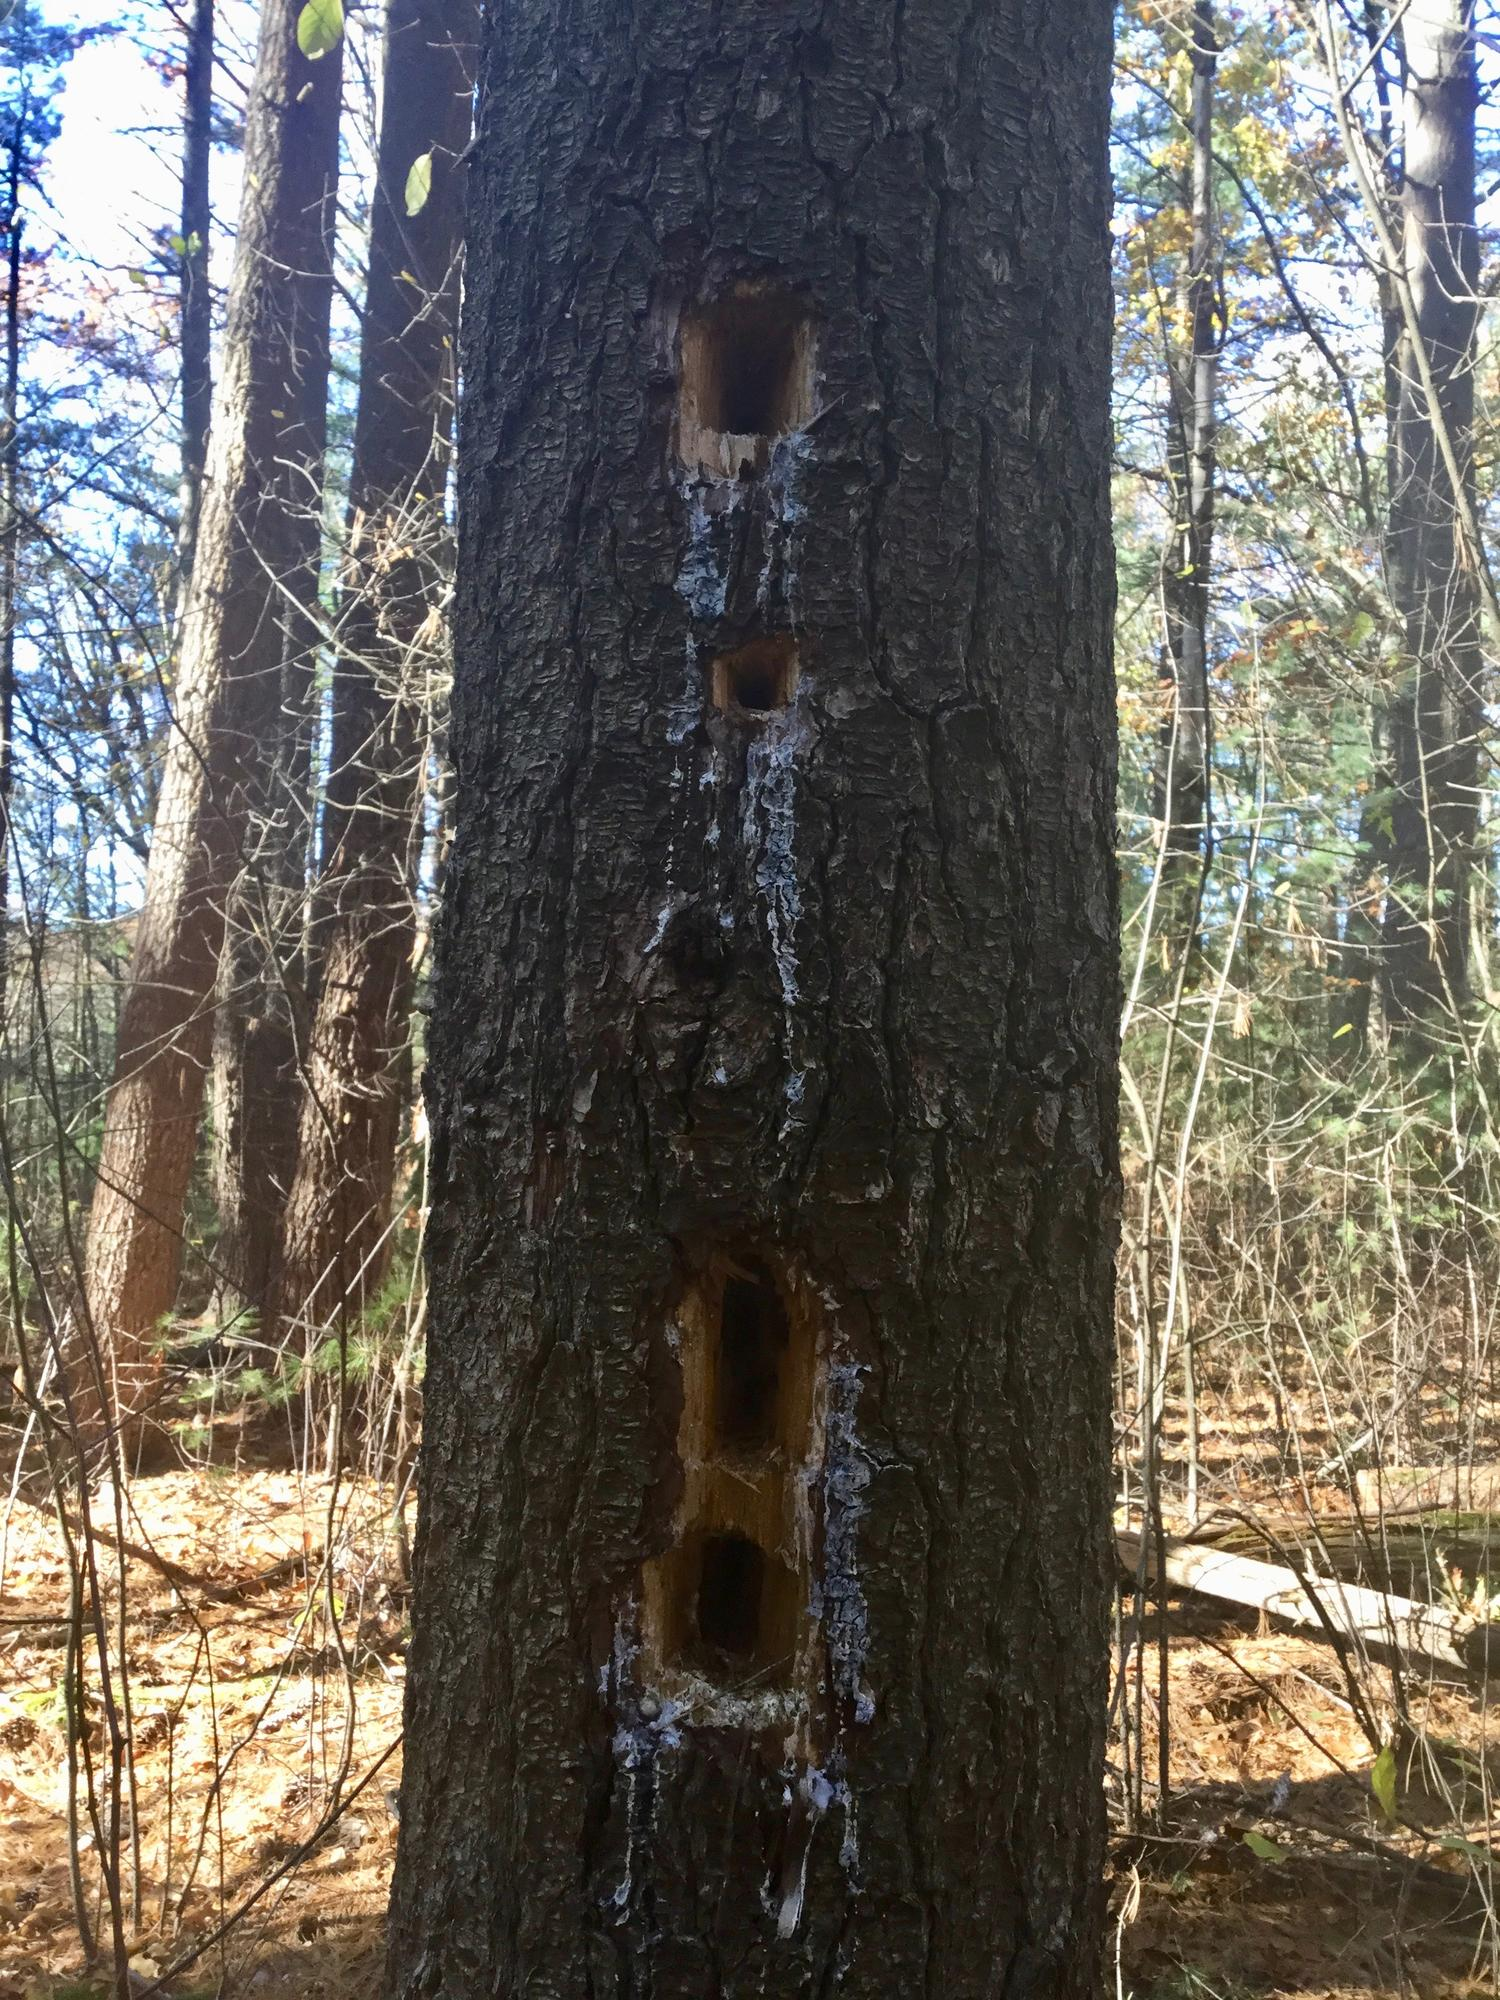 Tree with rectangular holes made by Pileated Woodpecker.